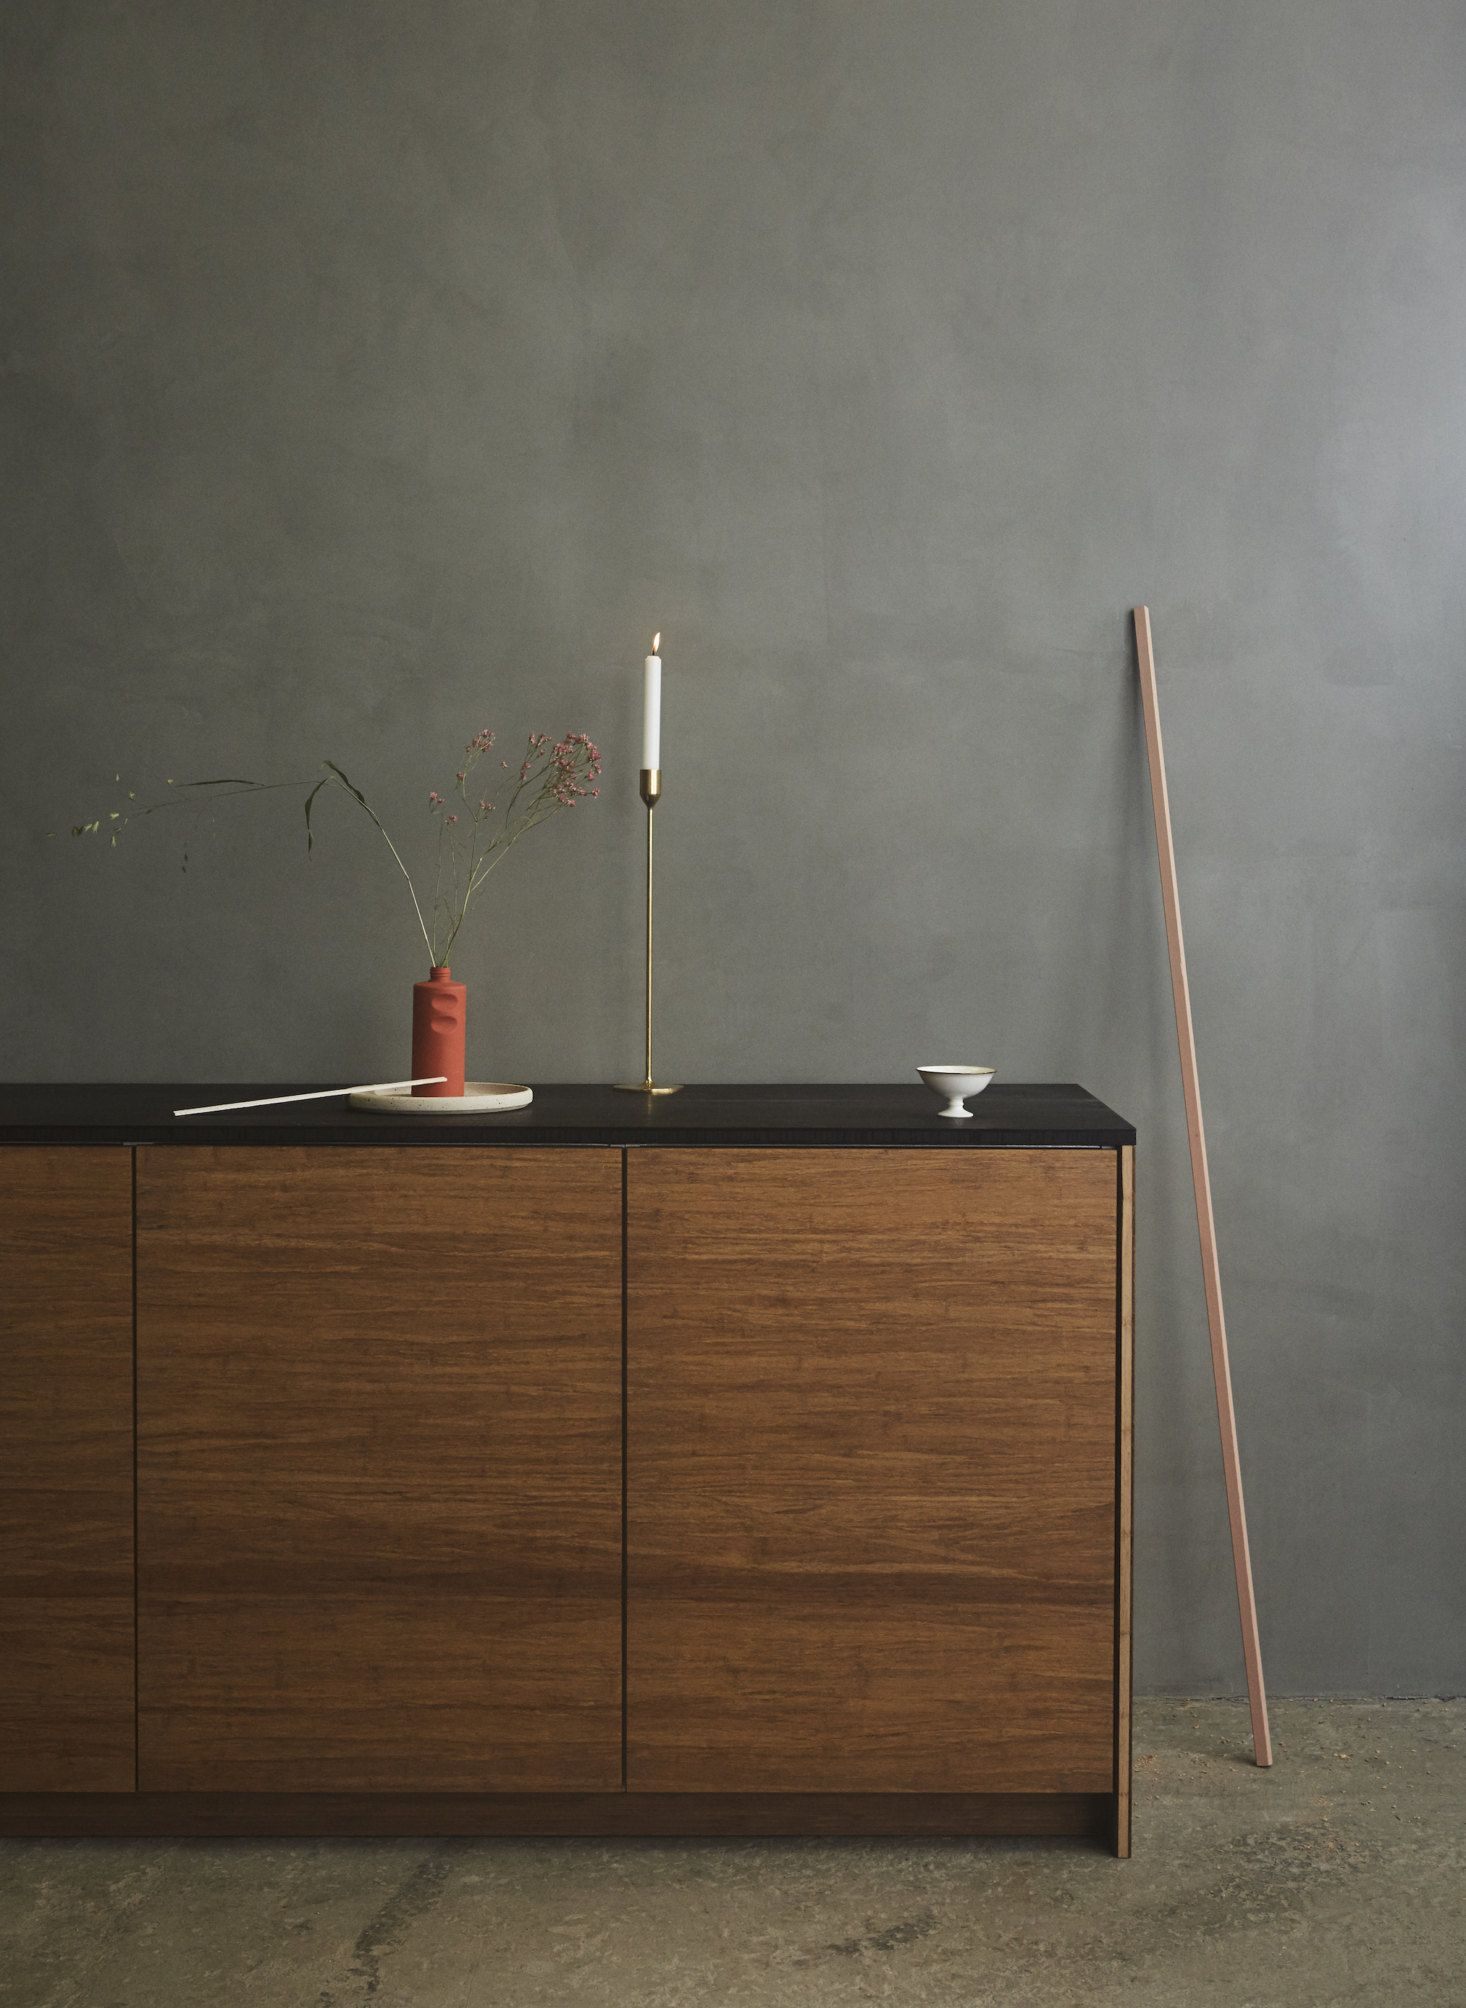 Ikea Upgrade Stylish Sustainable Bamboo Cabinet Fronts For Ikea Kitchen Cabinets In 2020 Bamboo Cabinets Custom Kitchen Cabinets Ikea Kitchen